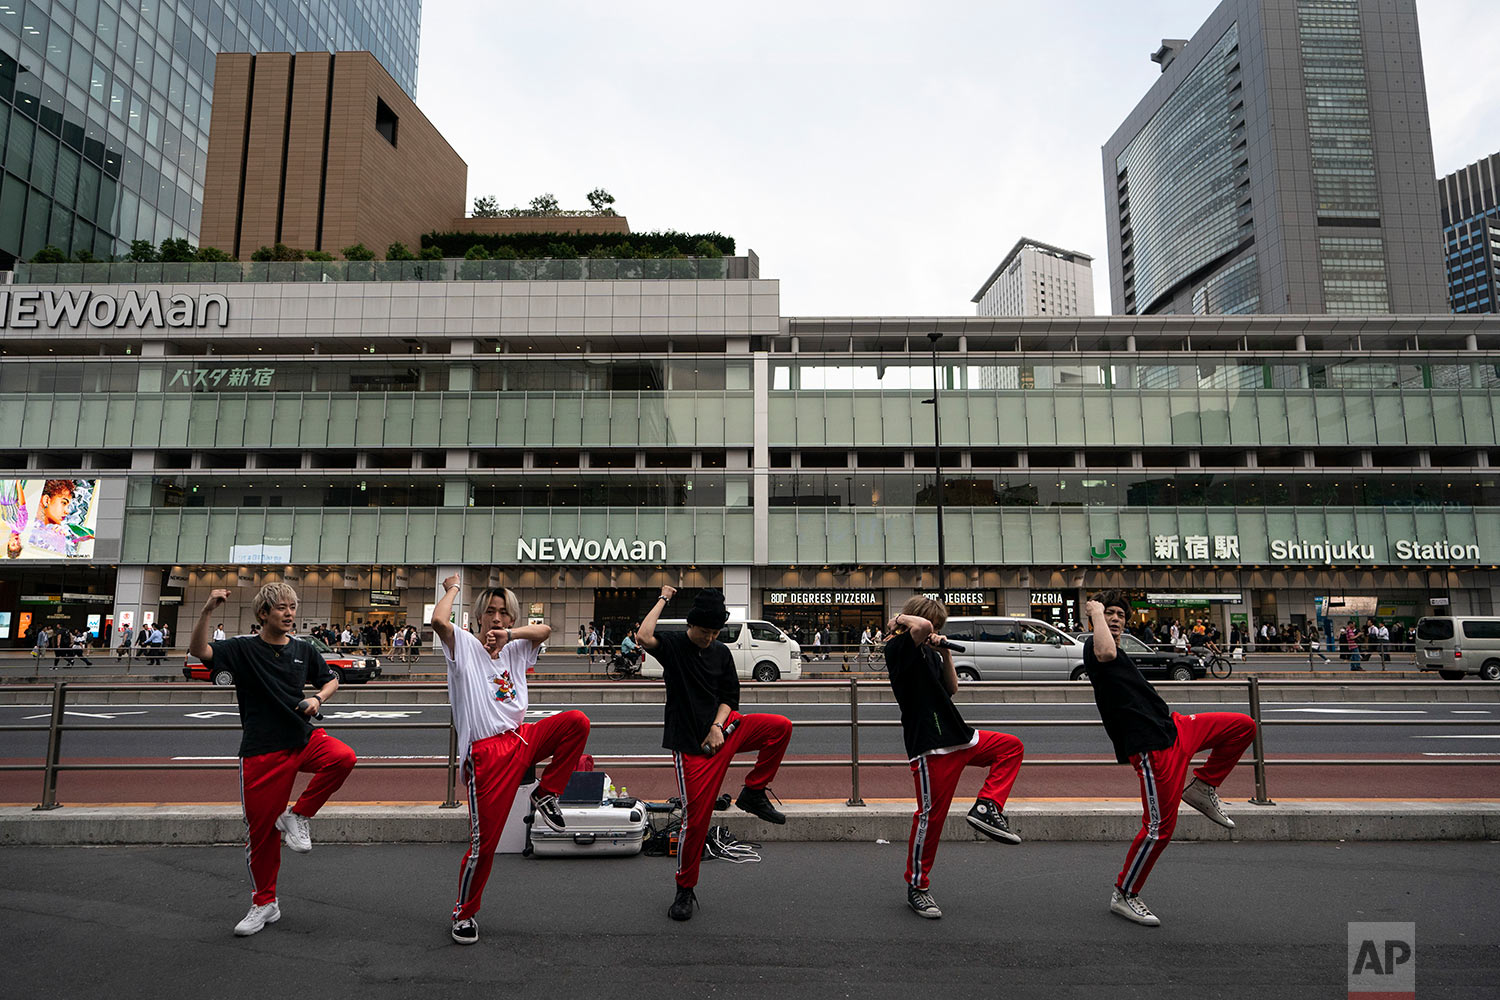 A Japanese dance and vocal group called Banquet performs on the street outside Shinjuku Station in Tokyo, June 4, 2019. (AP Photo/Jae C. Hong)